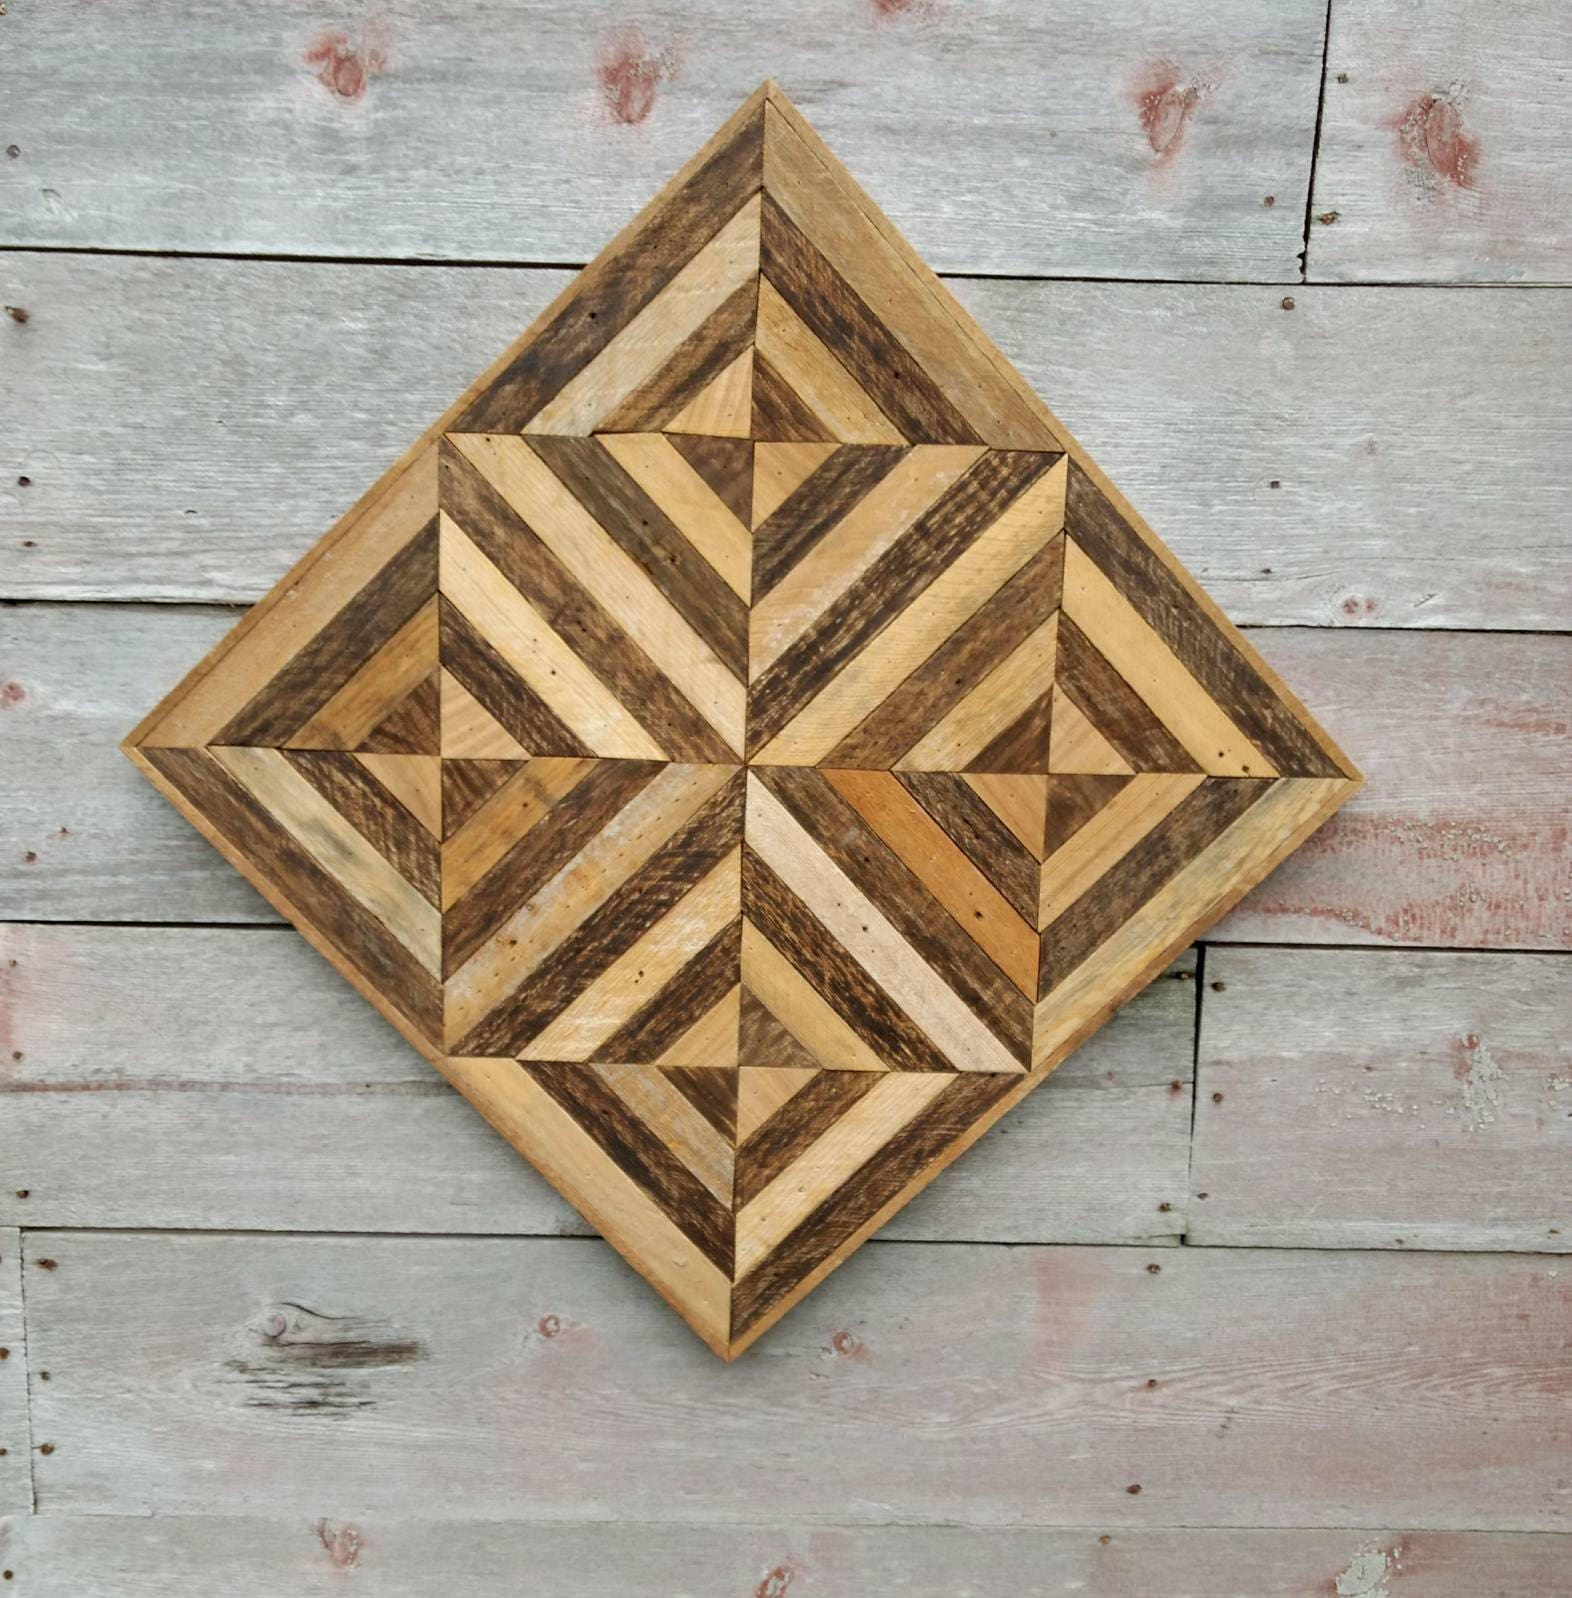 optical wood illusion decor salvage geometric